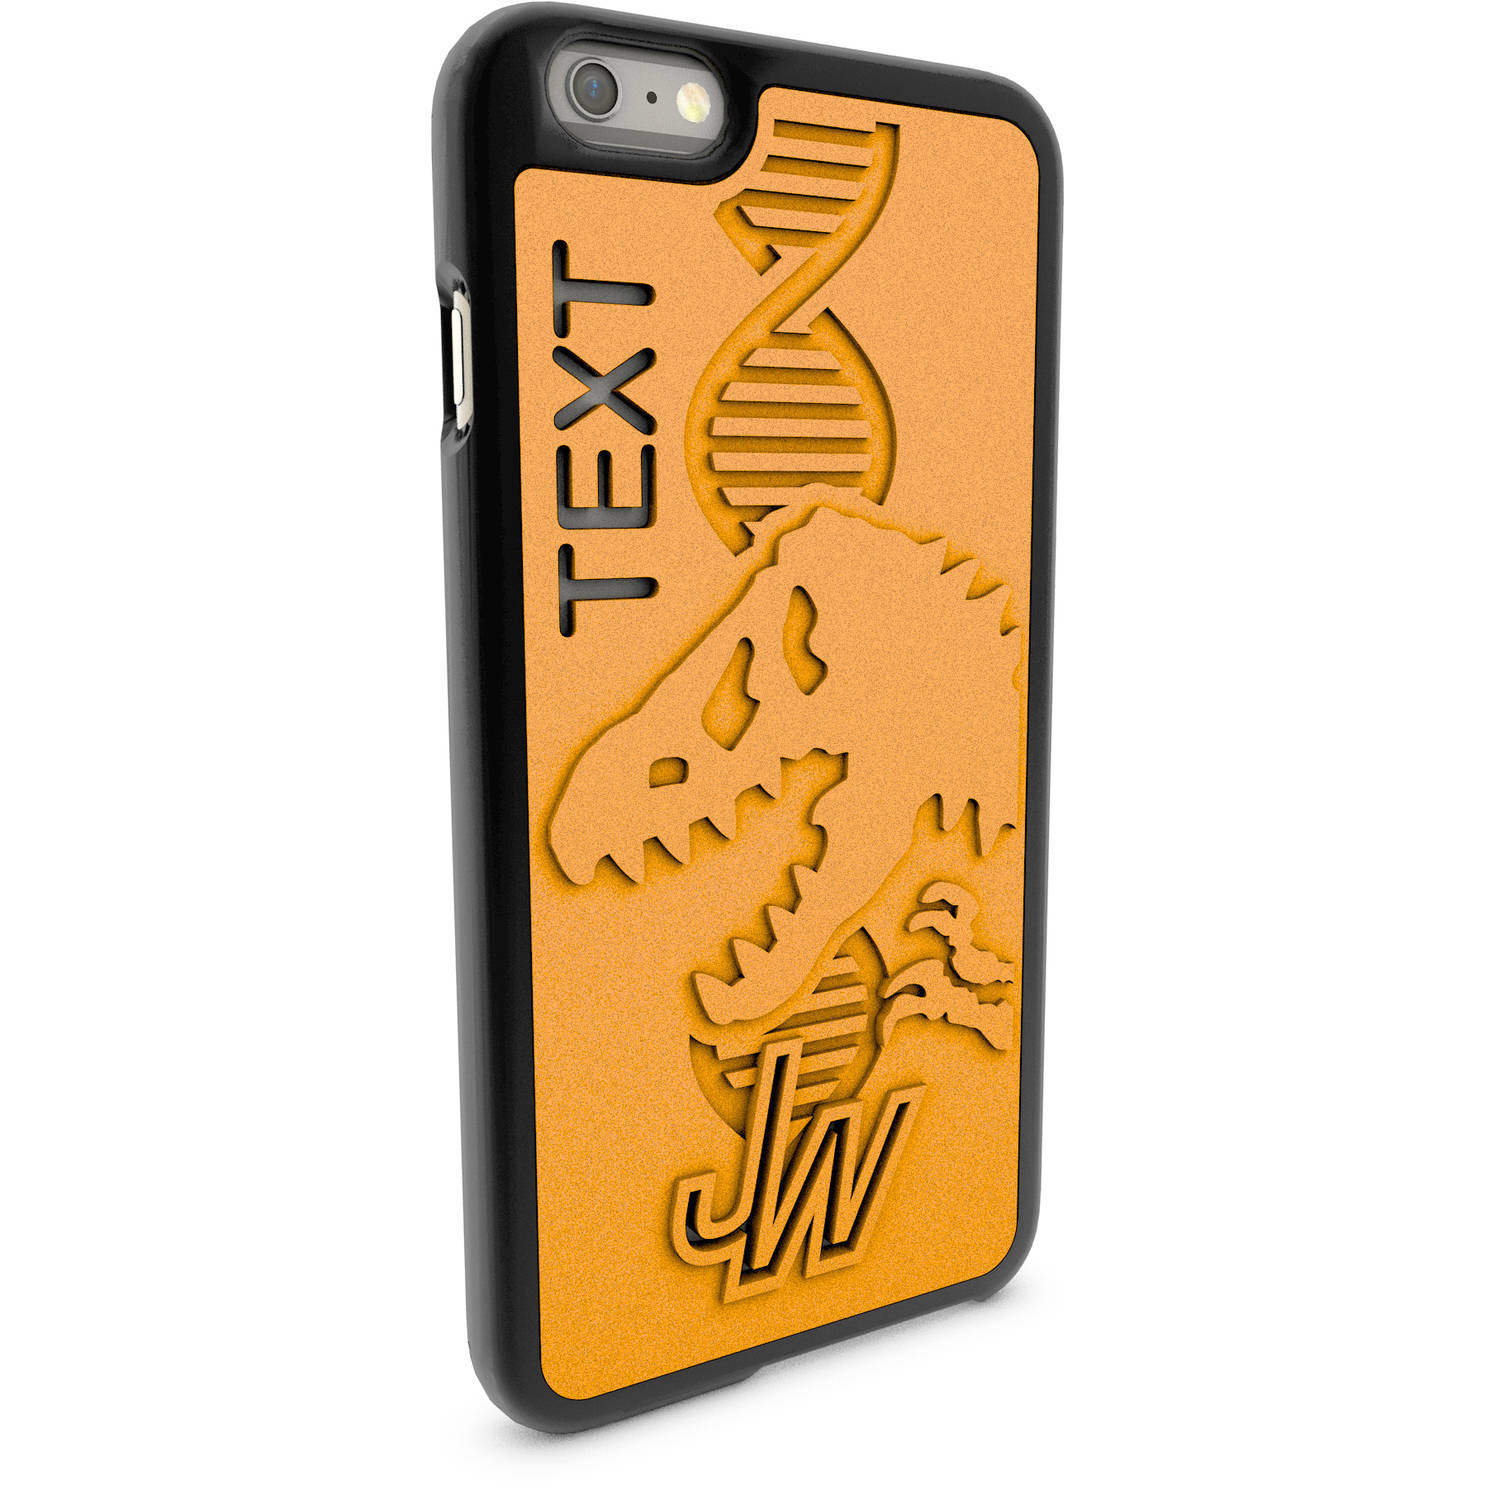 Apple iPhone 6 Plus and 6S Plus 3D Printed Custom Phone Case - Jurassic World - Double Helix Skeleton